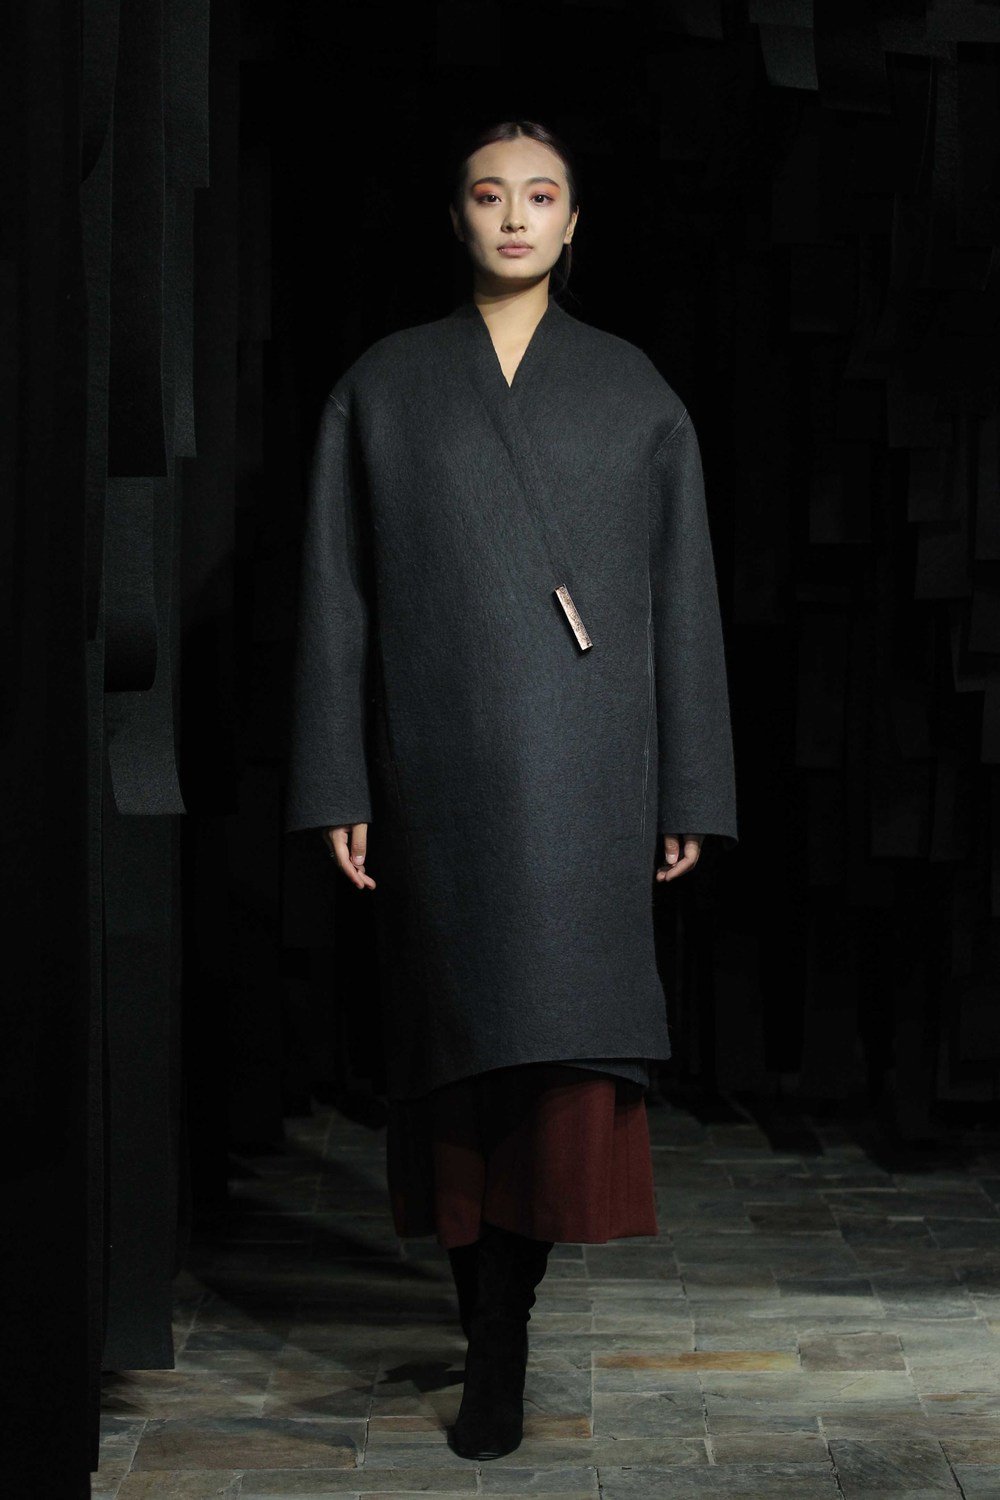 Straight-cut yak-felt coat with leather trim // wide woolen flannel-jersey 7/8 pants // silver brooch